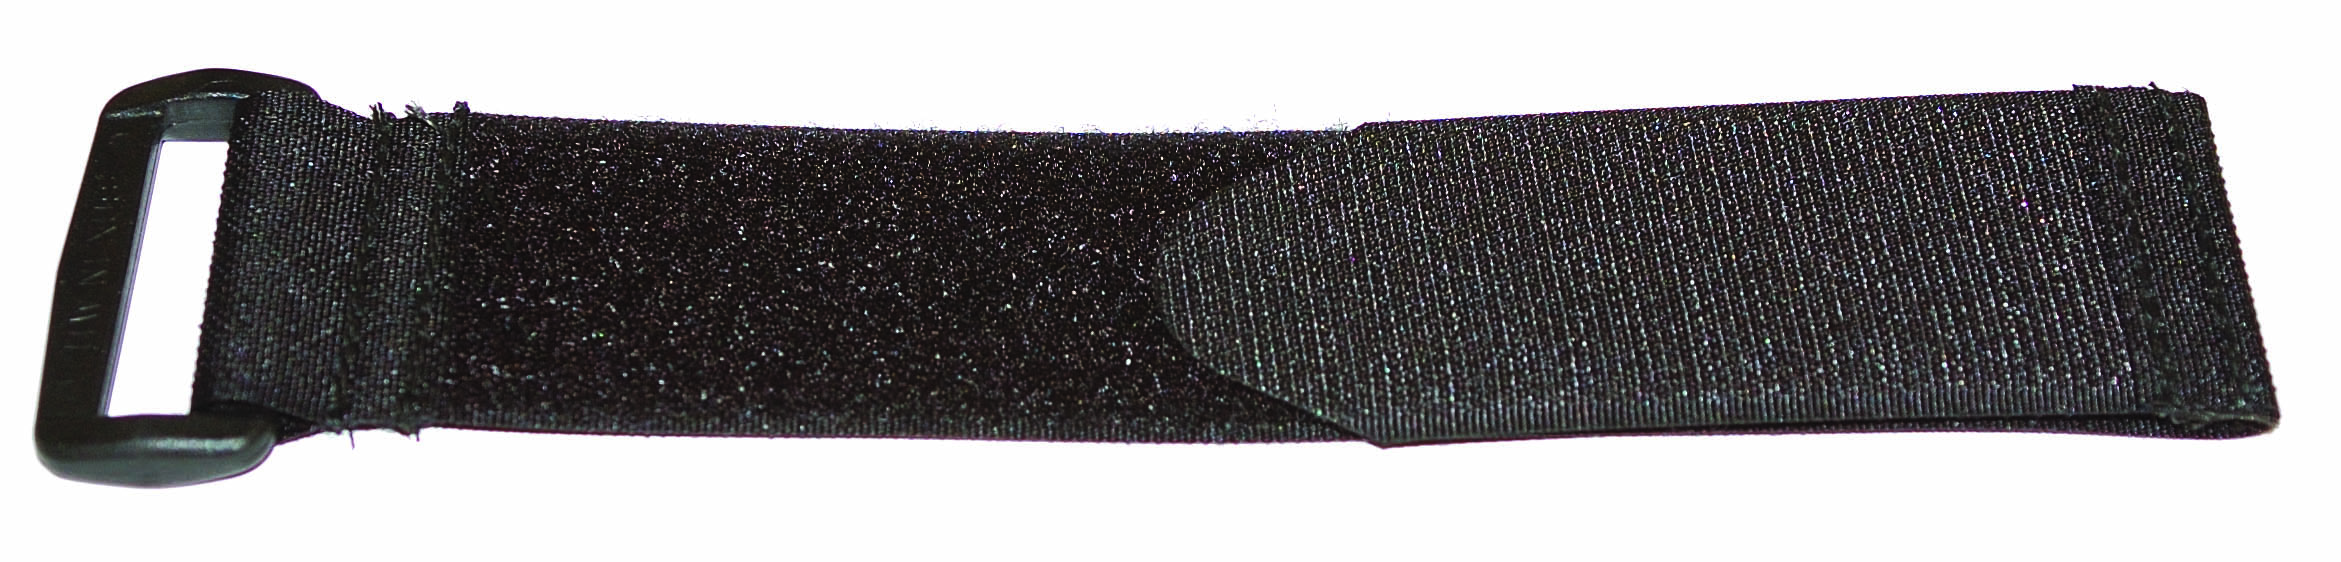 Velcro Strap With Buckle For Hose Sprayr Carpet Cleaning